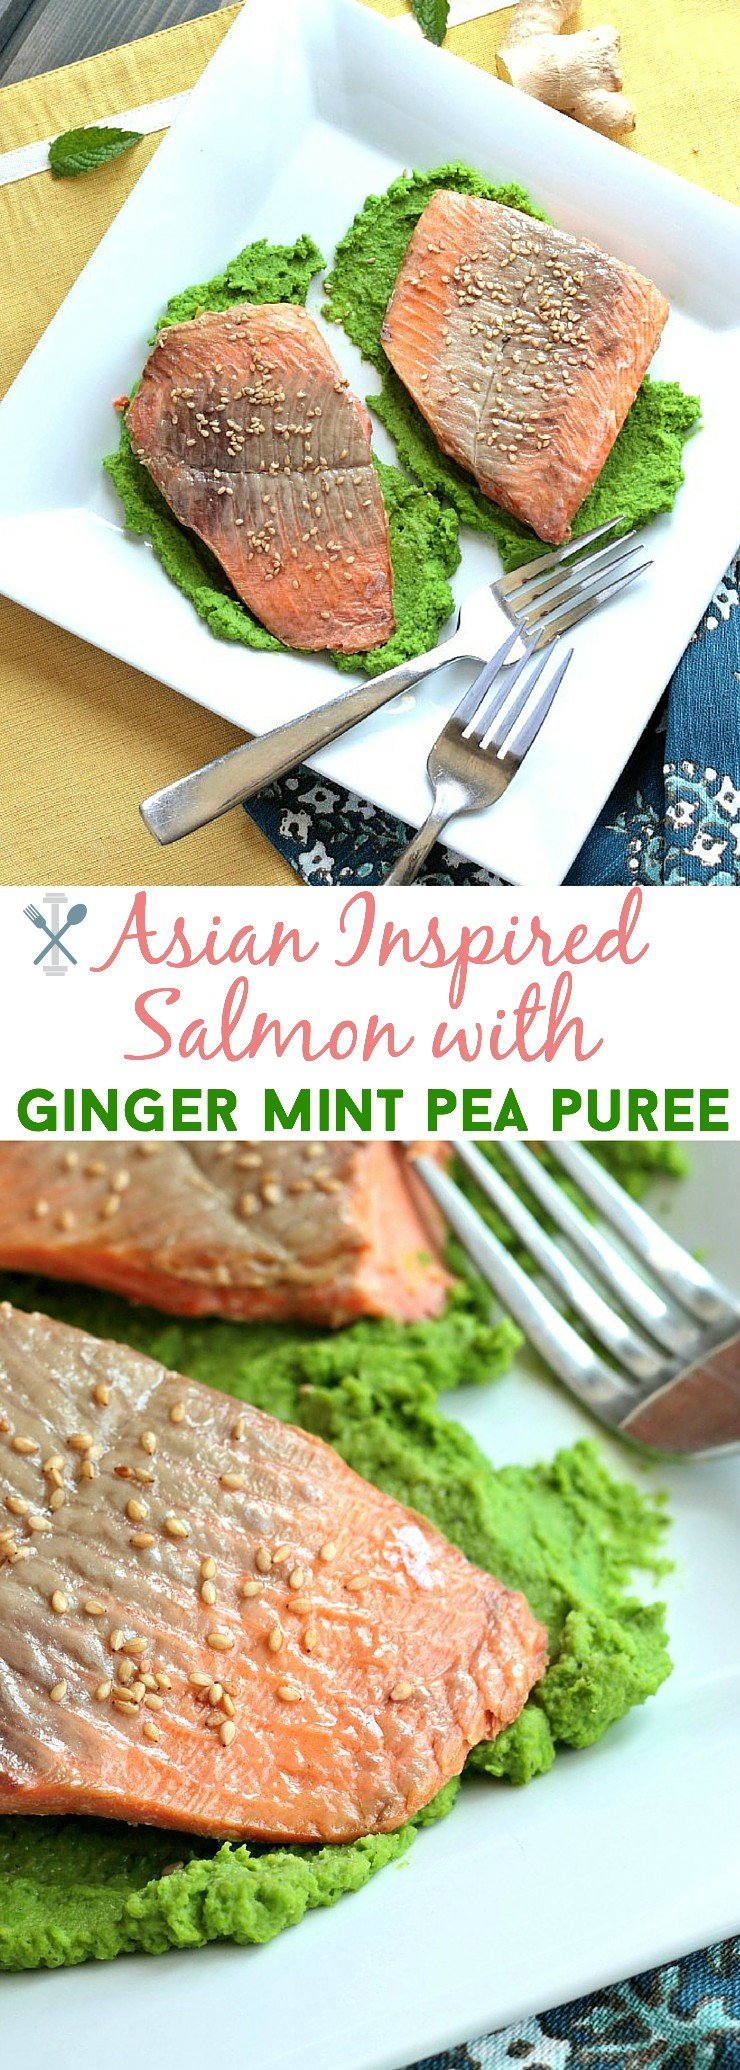 This gluten-free, dairy-free healthy salmon dinner has an Asian-inspired marinade over an amazing ginger mint pea puree. Dinner in under 20 minutes!